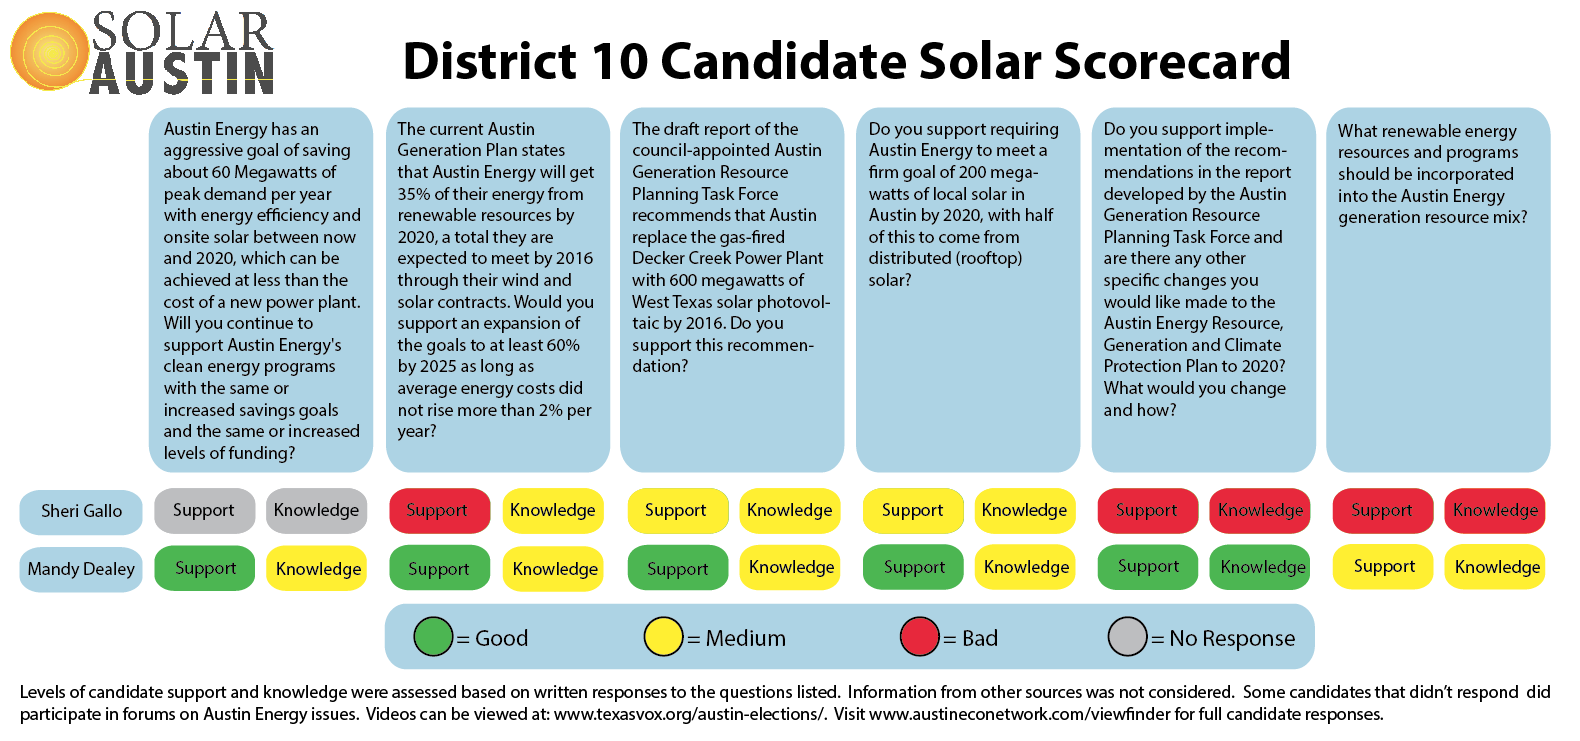 2014 Solar Austin Council District 10 Candidate Solar Scorecard - Runoffs